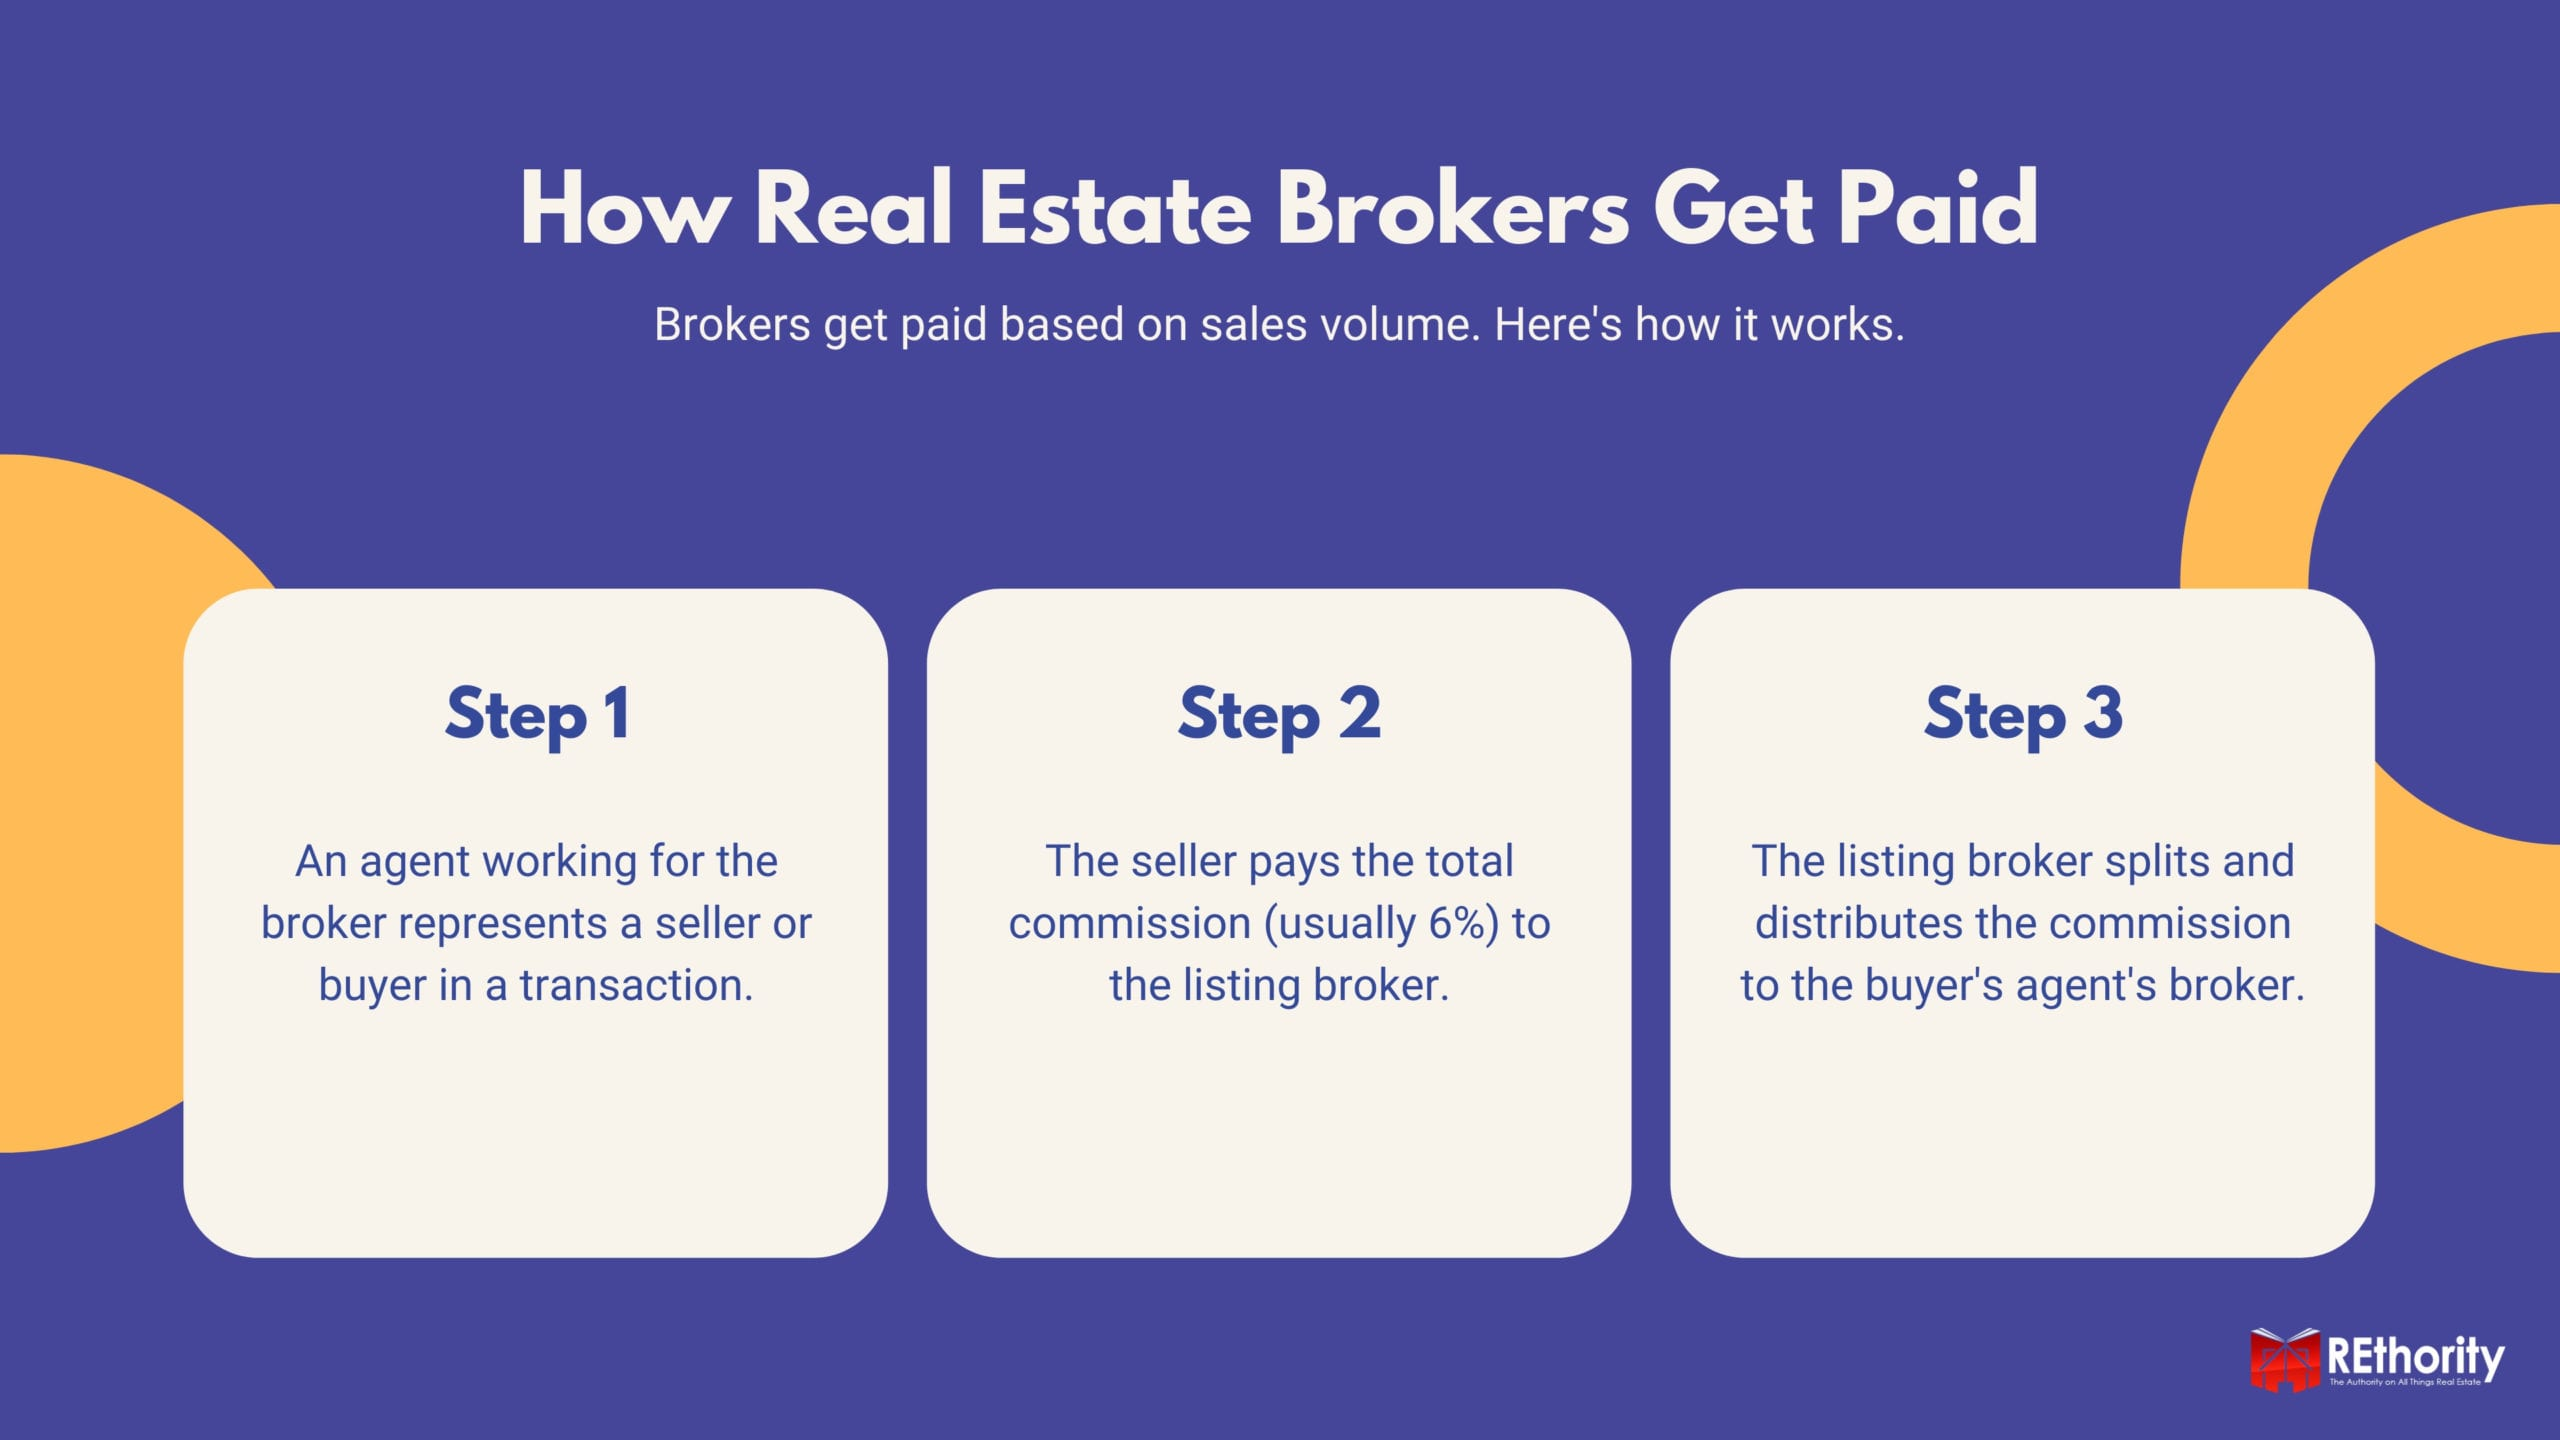 How real estate brokers get paid graphic